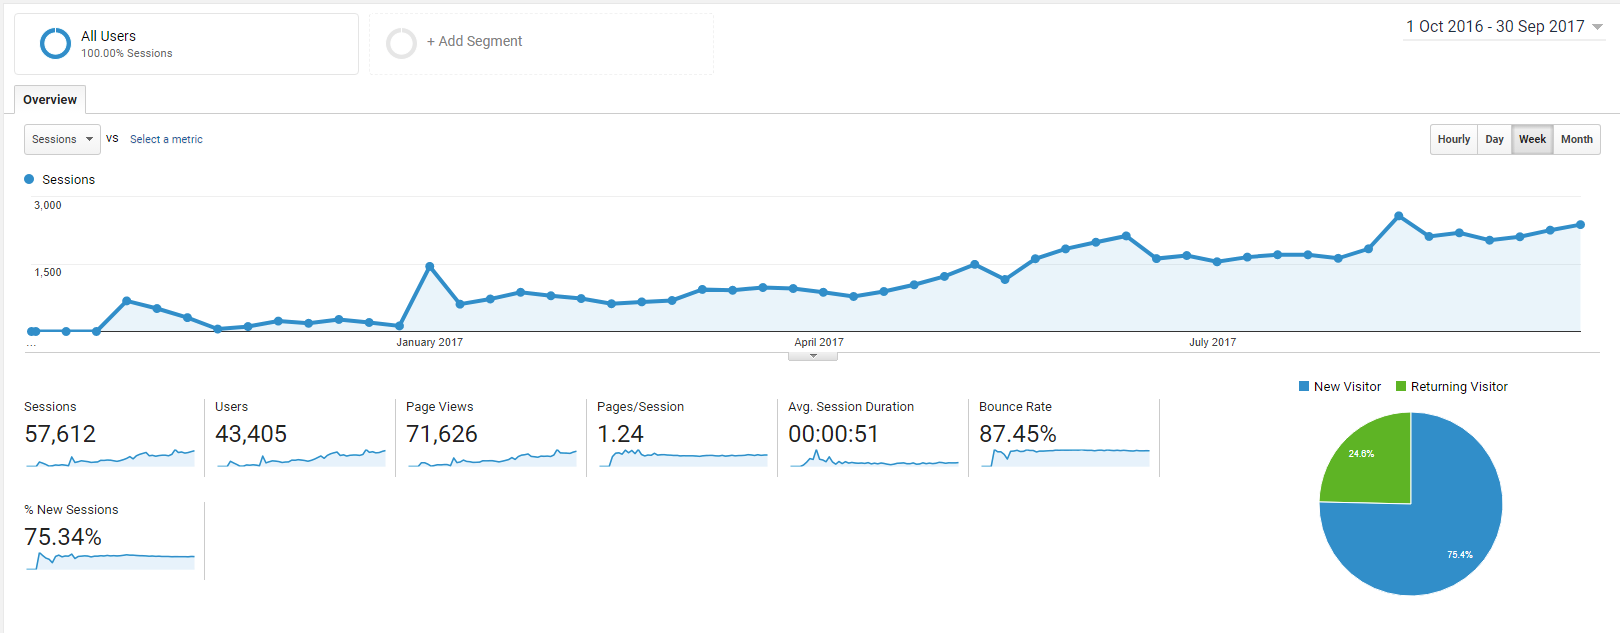 Monthly page views since creation